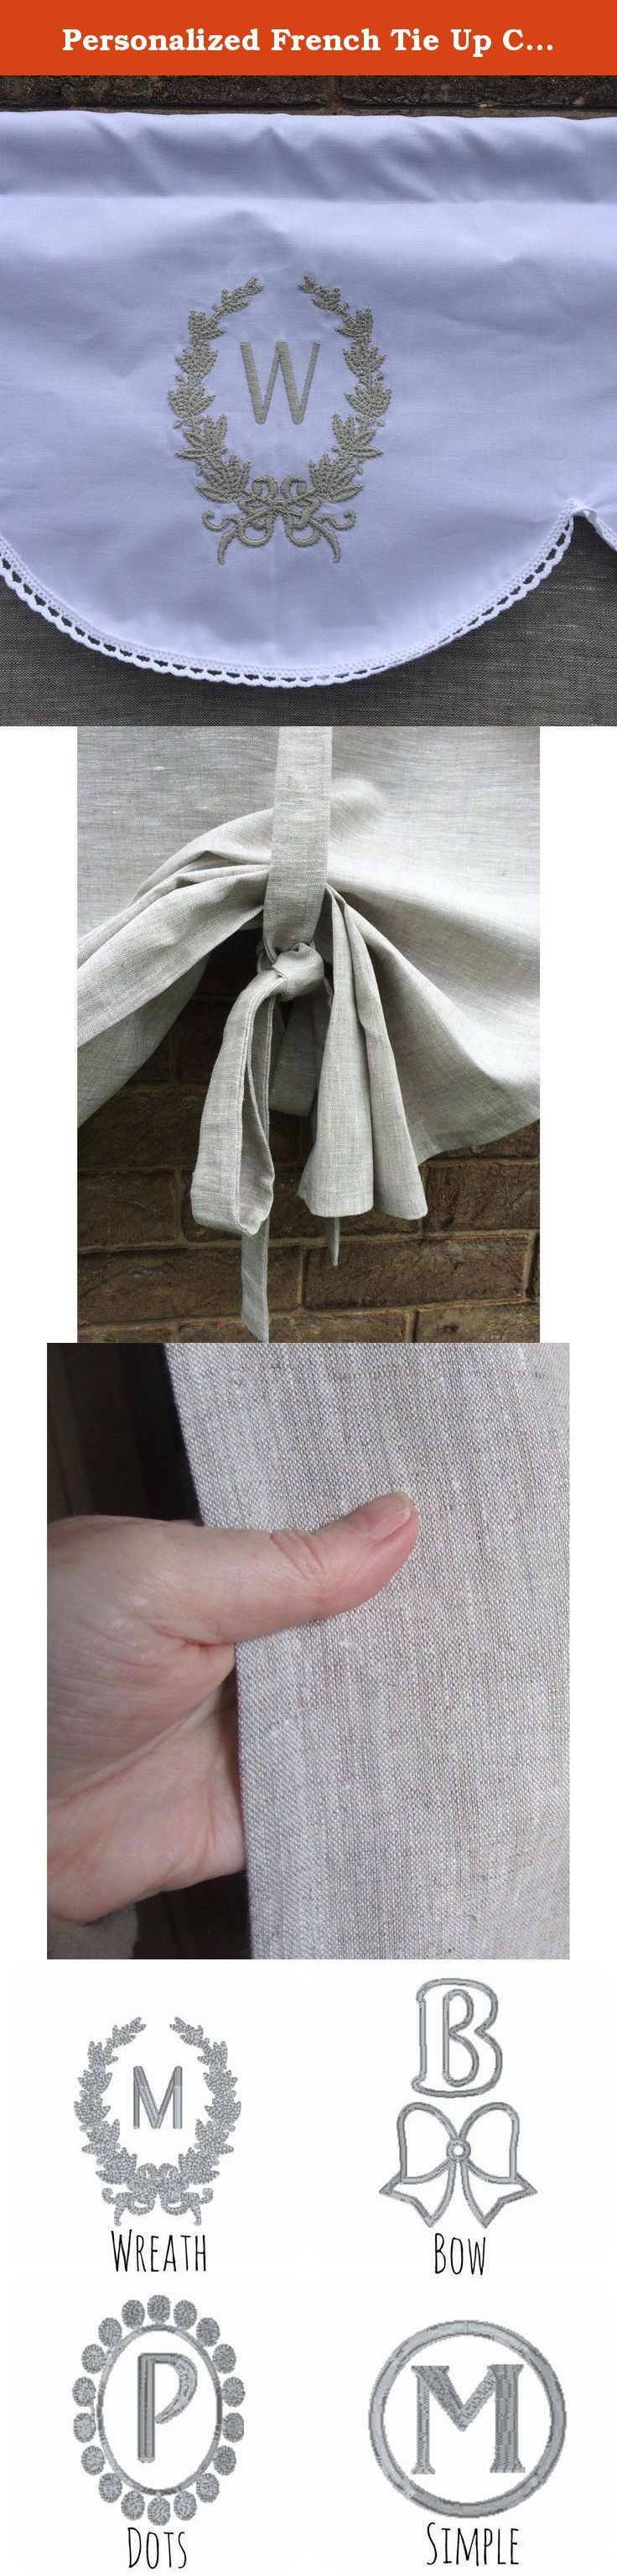 Personalized French Tie Up Curtain Grey Natural Flax Linen Door Custom Monogram. This beautiful elegant panel is a statement piece for any room or hang at your front door to provide a little privacy ! It is customized with your personal monogram. Maybe your family name?.